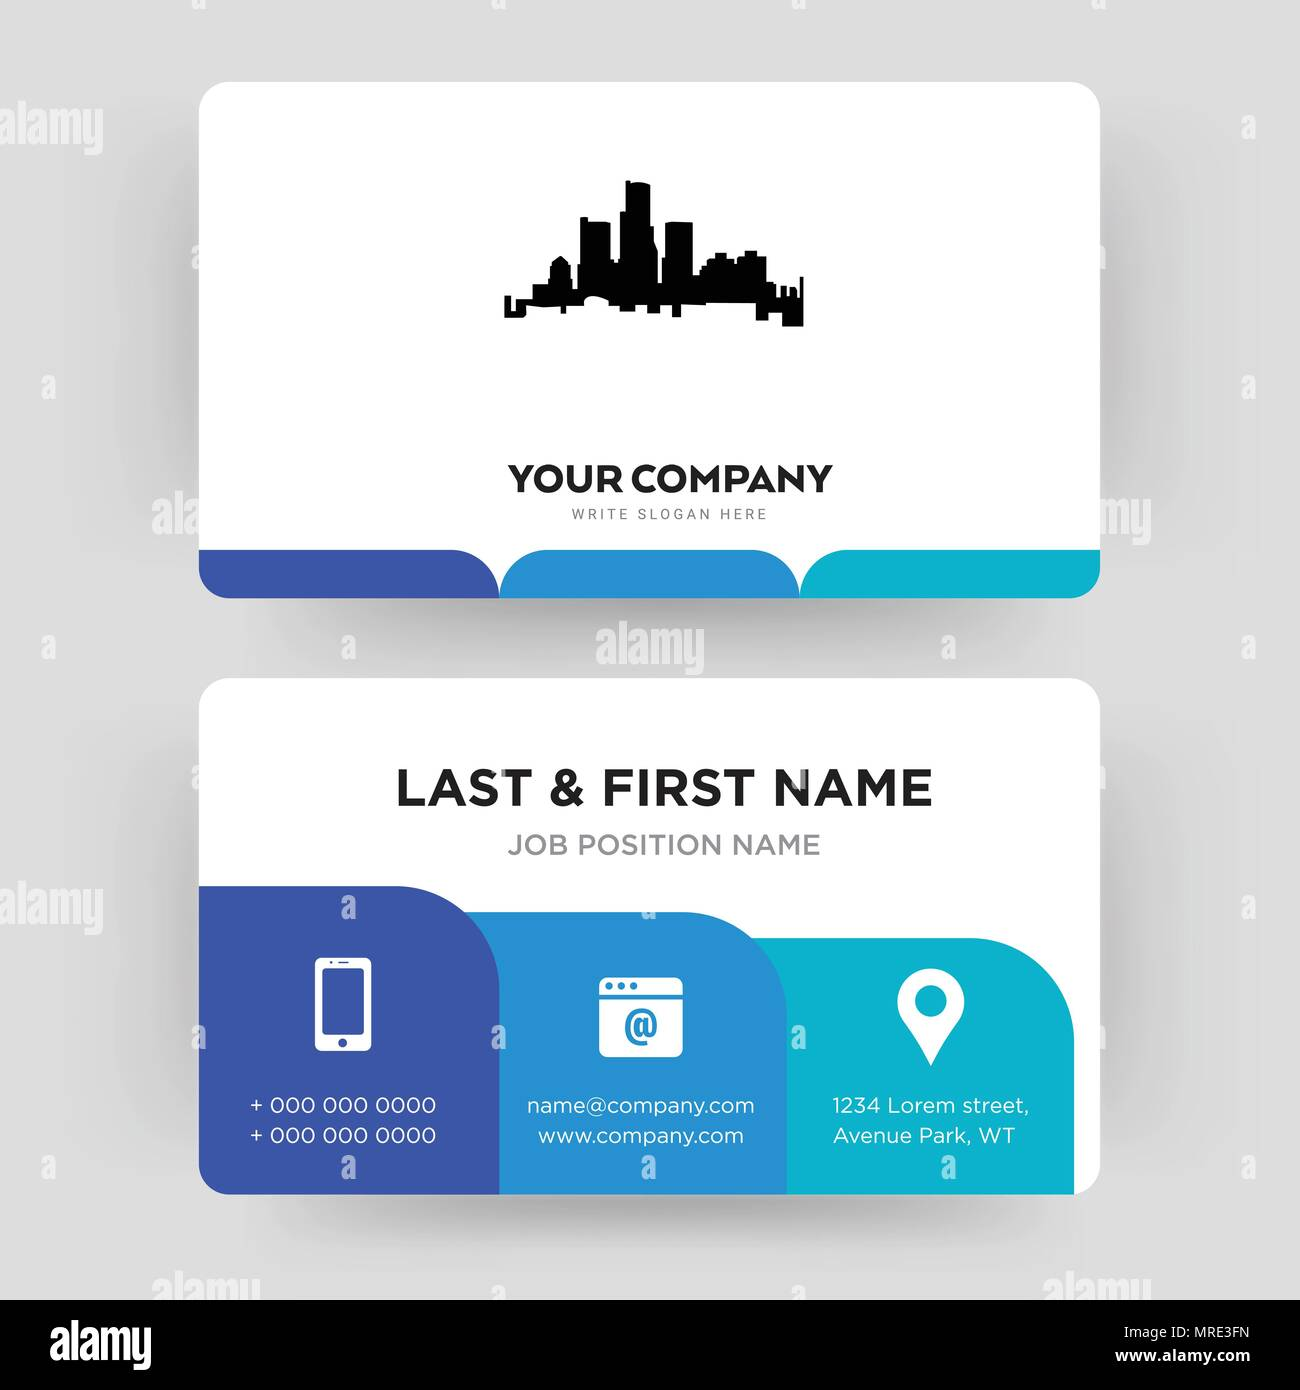 Michigan state business card design template visiting for your michigan state business card design template visiting for your company modern creative and clean identity card vector colourmoves